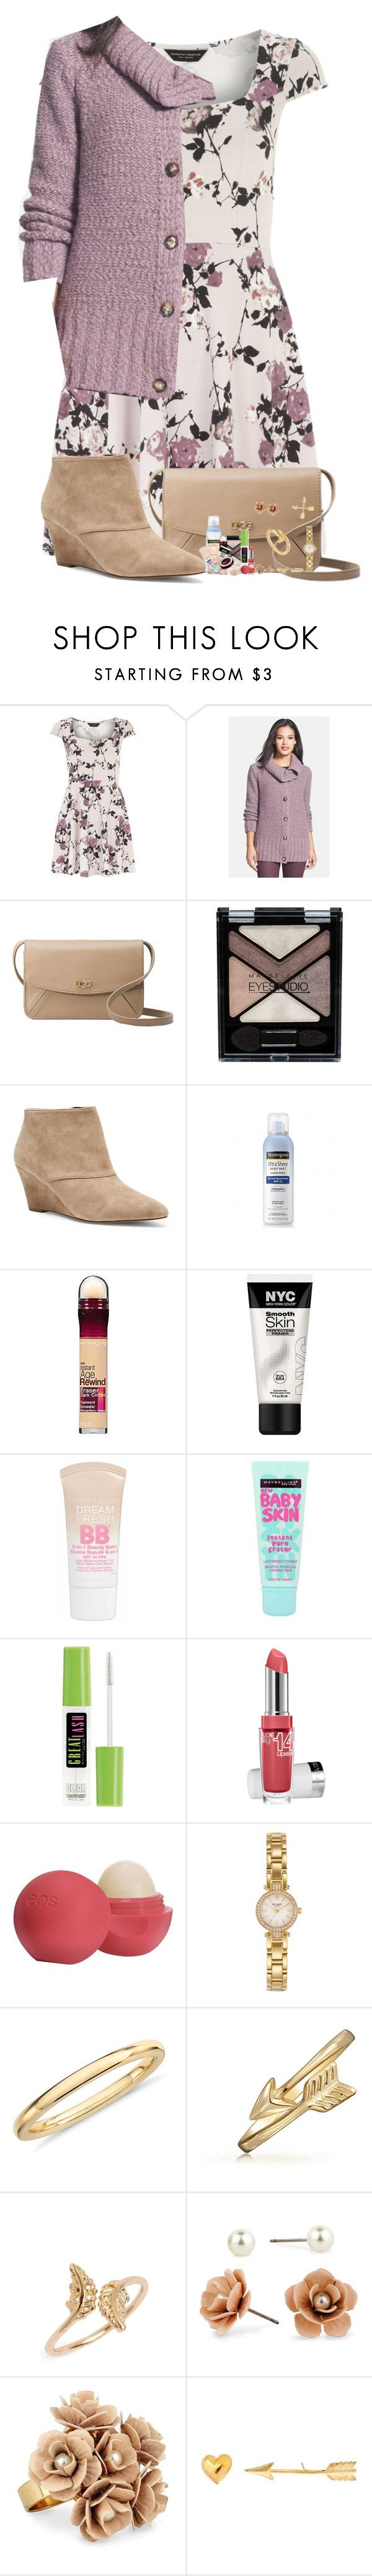 """Queen of Wolves"" by nessiecullen2286 ❤ liked on Polyvore featuring Dorothy Perkins, Lafayette 148 New York, UGG Australia, Maybelline, Sole Society, Neutrogena, Eos, Kate Spade, Blue Nile and Bling Jewelry"